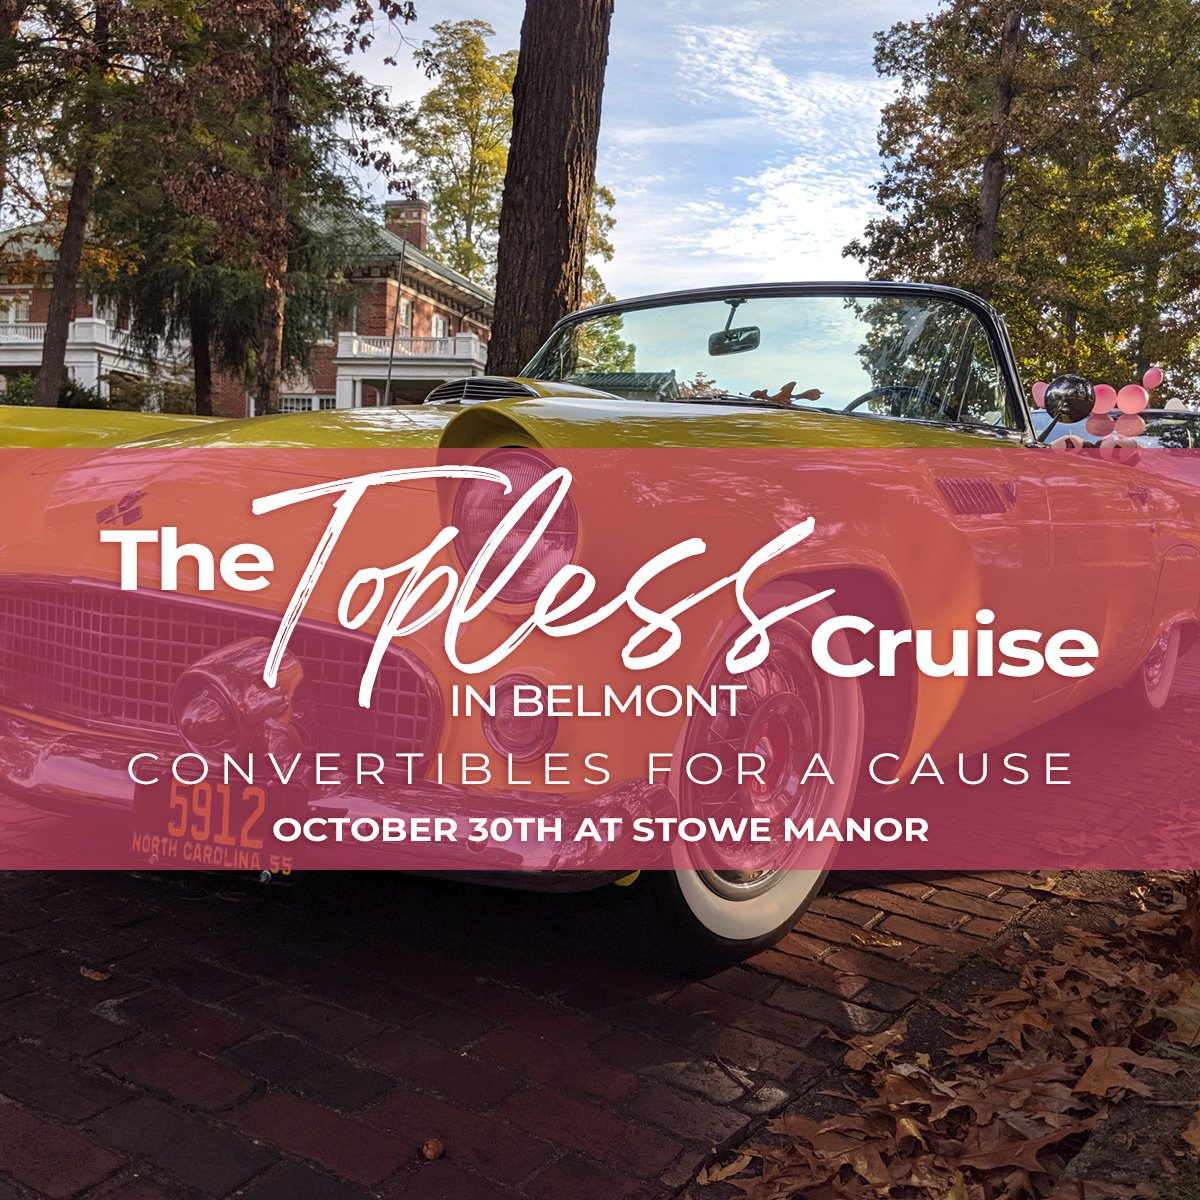 The Topless Cruise in Belmont; Convertibles for a Cause